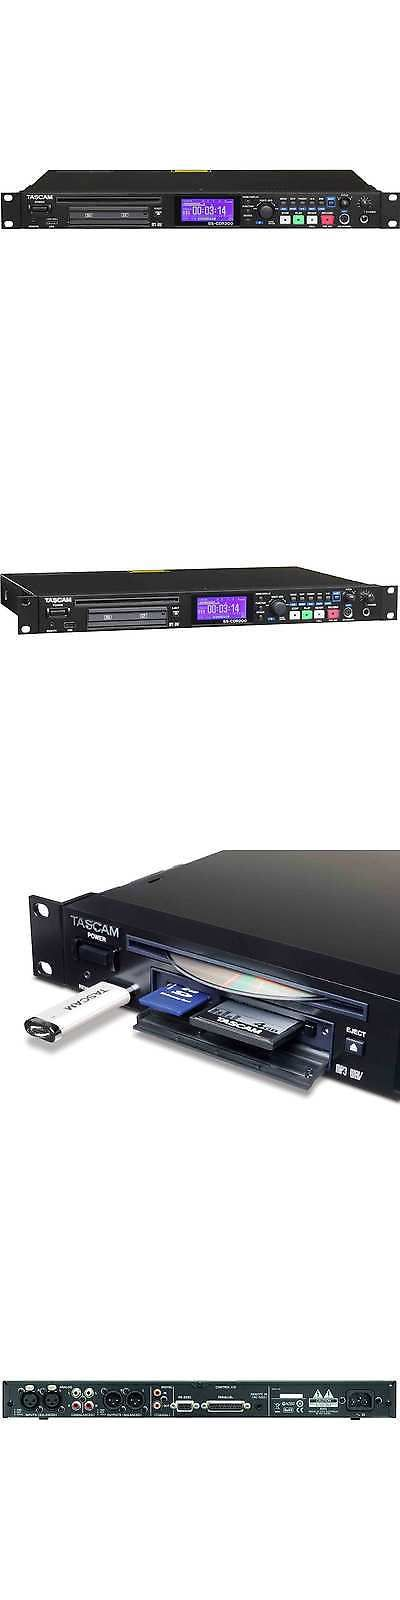 CD Players and Recorders: Tascam Audio Recorder For Solid State Cds - Ss-Cdr200 -> BUY IT NOW ONLY: $849.99 on eBay!